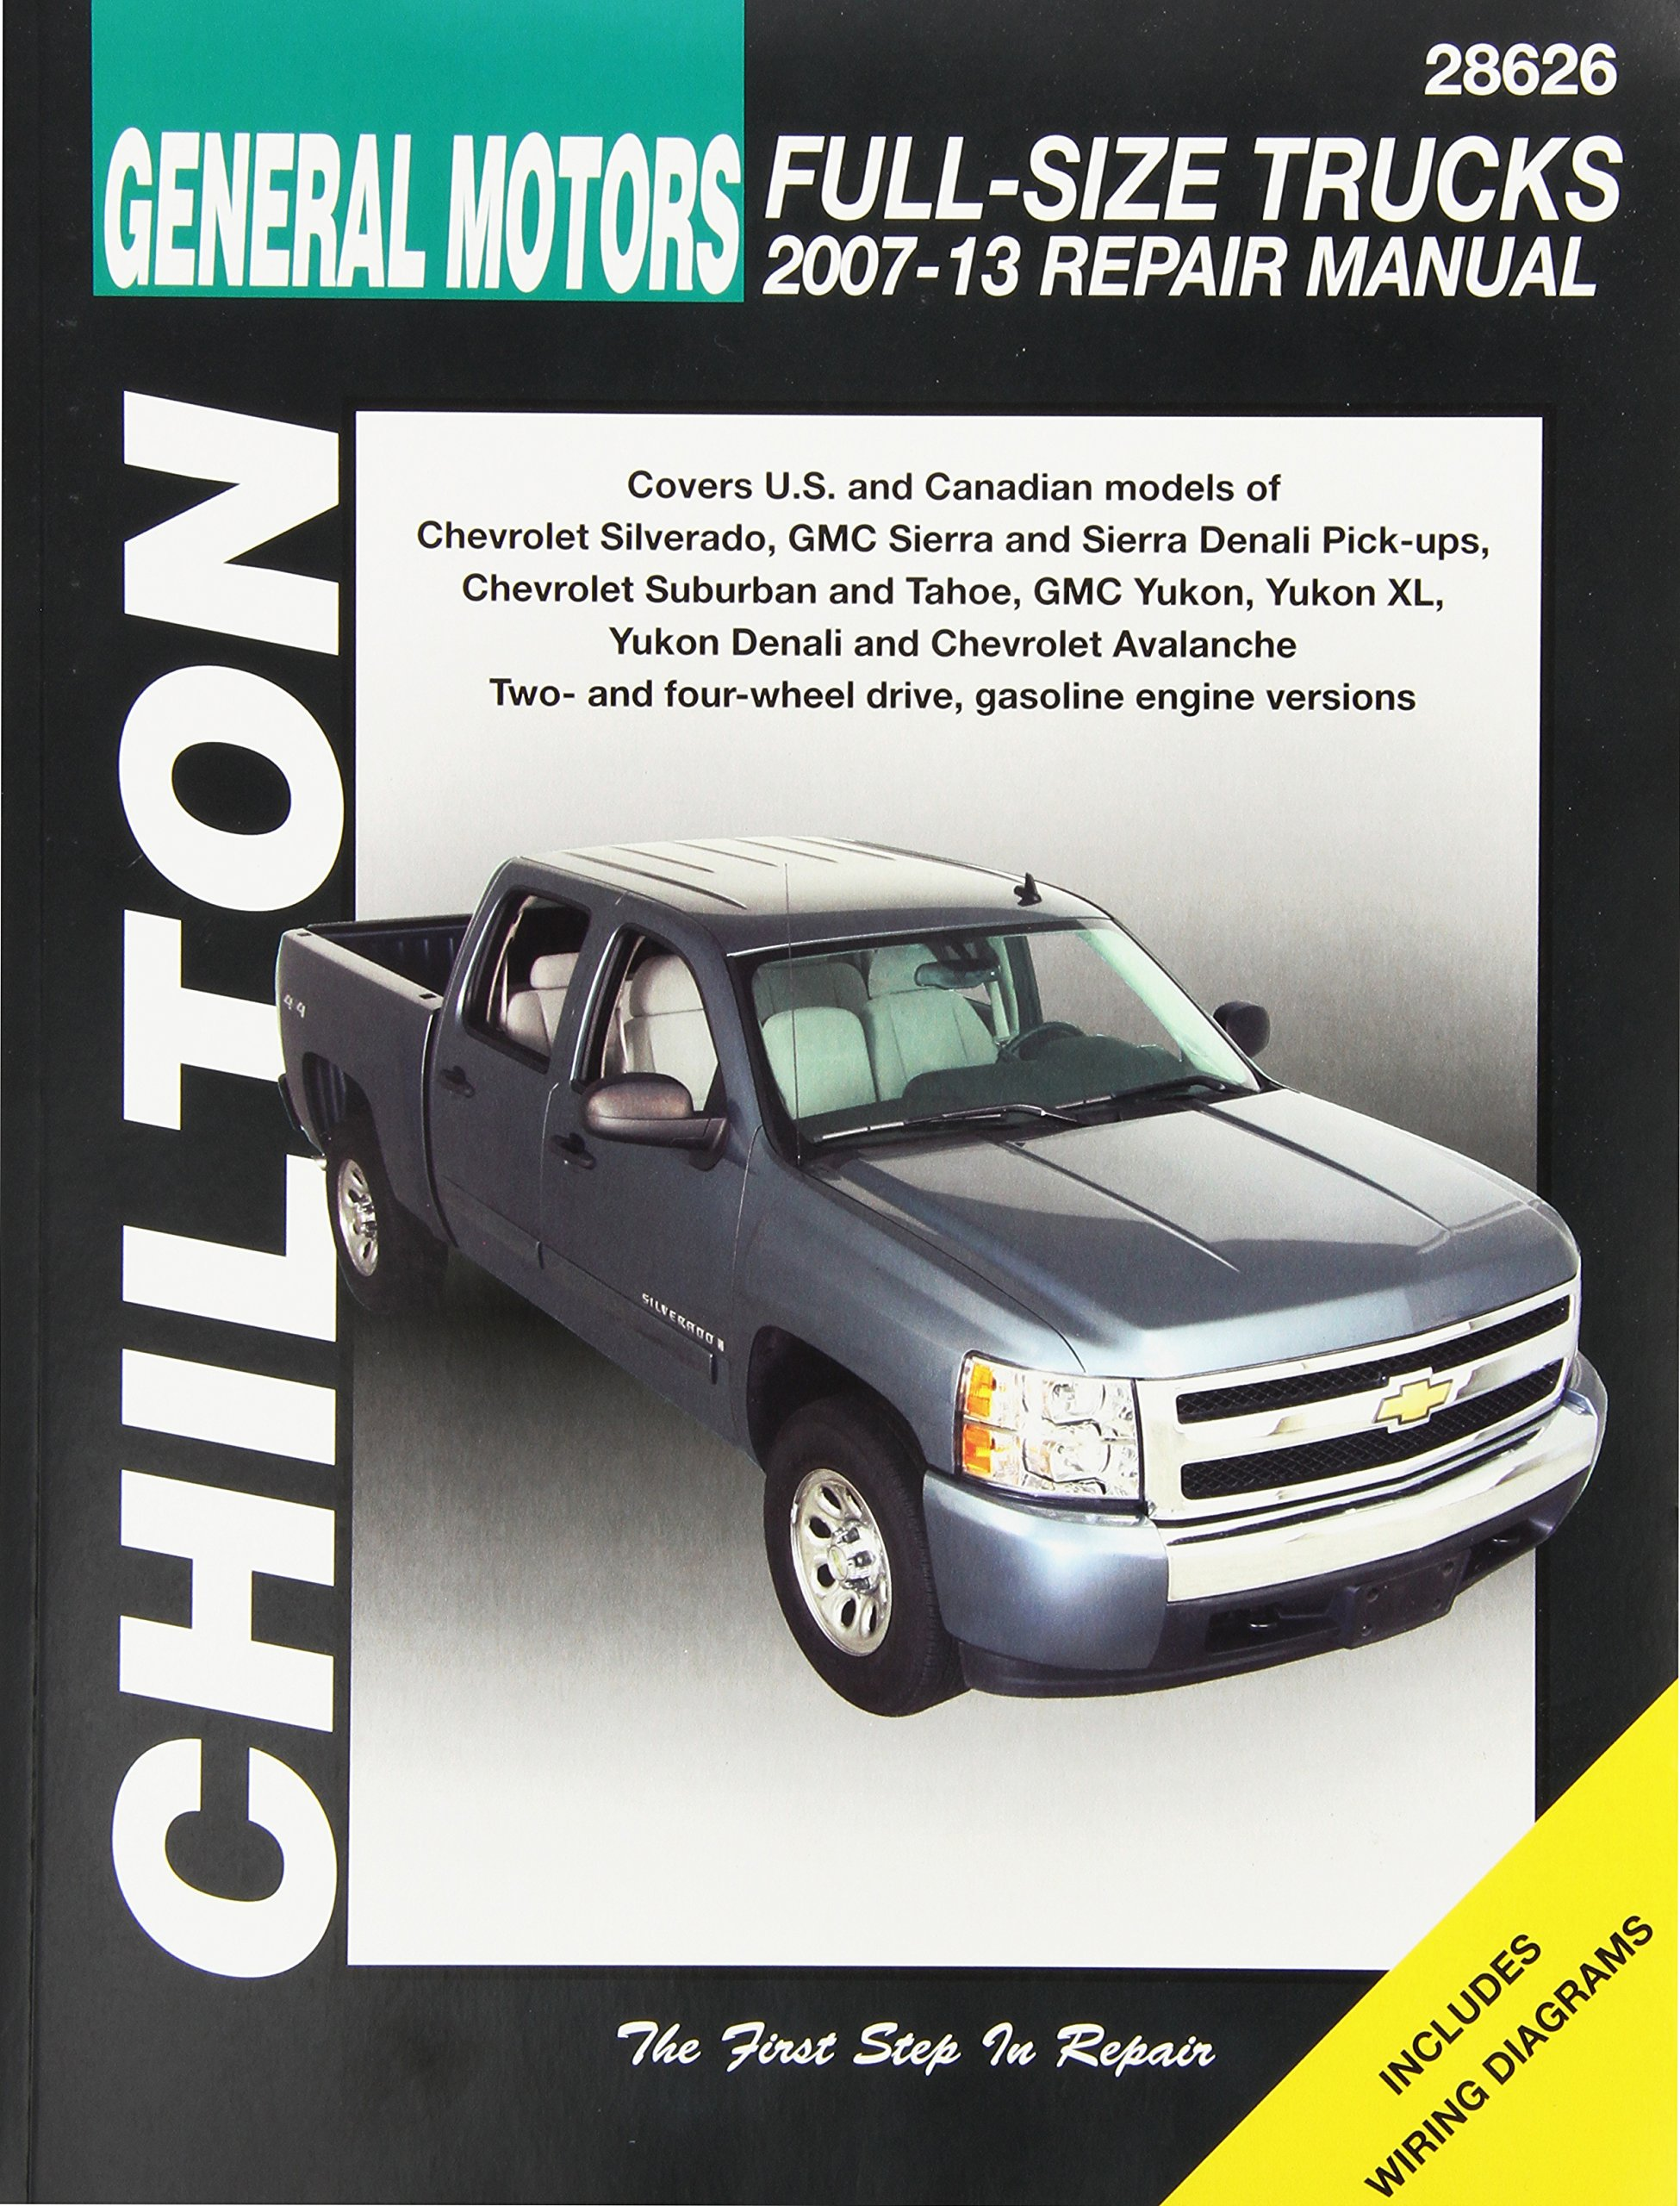 2002 gmc yukon manual browse manual guides 2002 yukon denali manual daily instruction manual guides u2022 rh testingwordpress co 2002 gmc yukon repair manual free 2002 gmc yukon repair manual fandeluxe Images